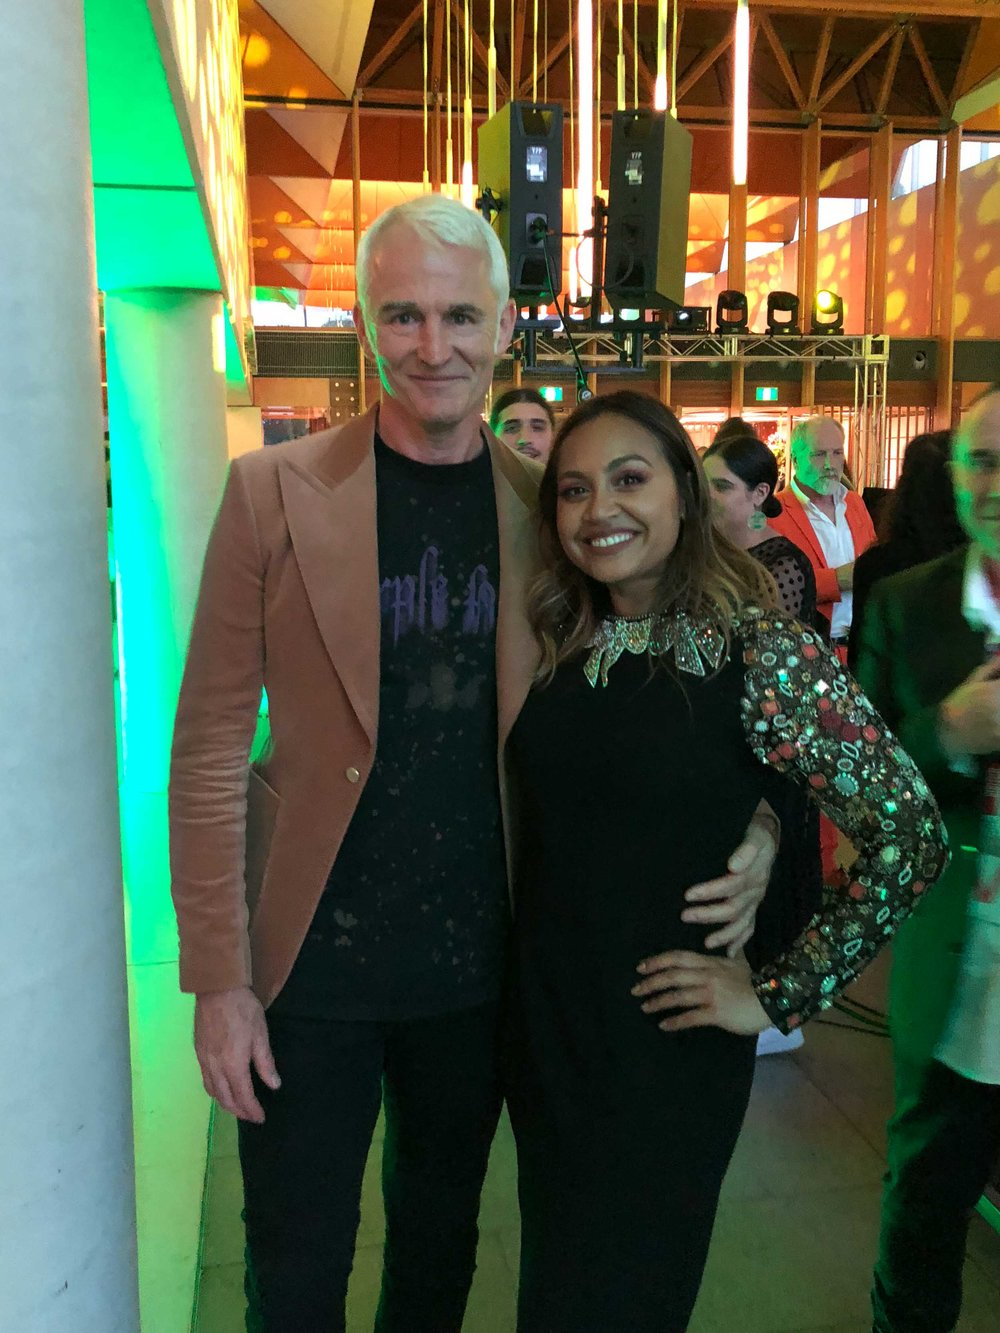 With Jessica Mauboy, 20/20 subject and performer on the night